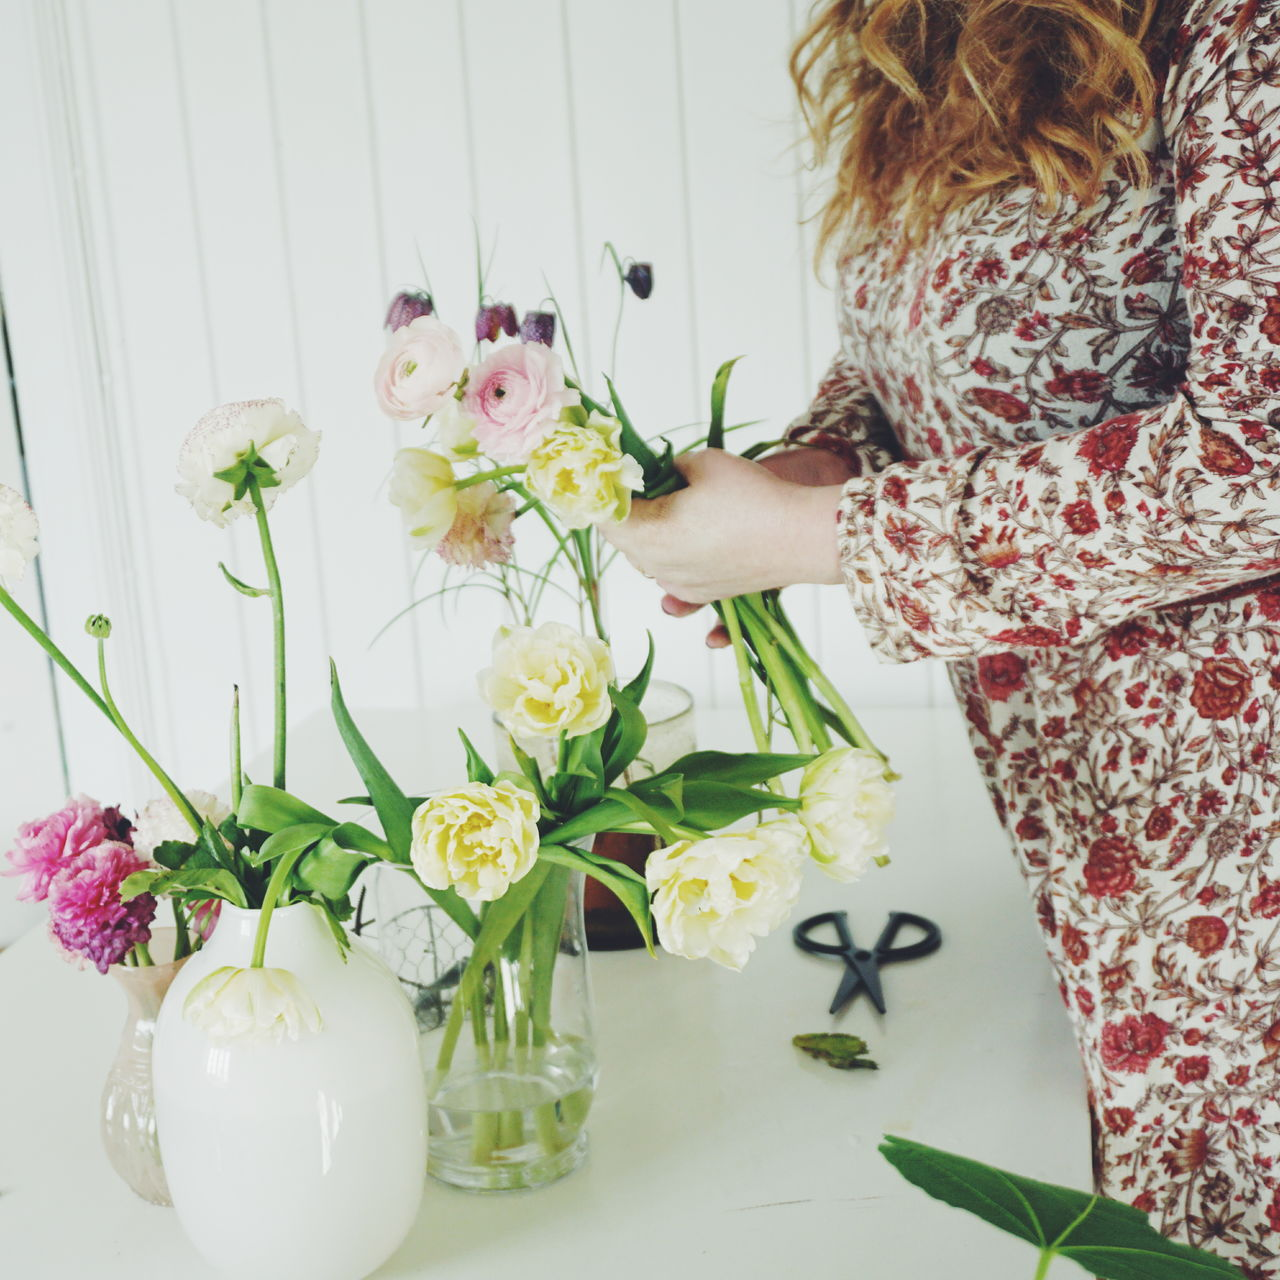 Making a bouquet of Spring flowers Adult Adults Only Bouquet Bouquet Of Flowers Bunch Of Flowers Day Flower Flower Arrangement Fragility Hands Hands At Work Indoors  One Person One Woman Only One Young Woman Only Only Women People Rose - Flower Spring Springtime Table Vase Women Young Adult